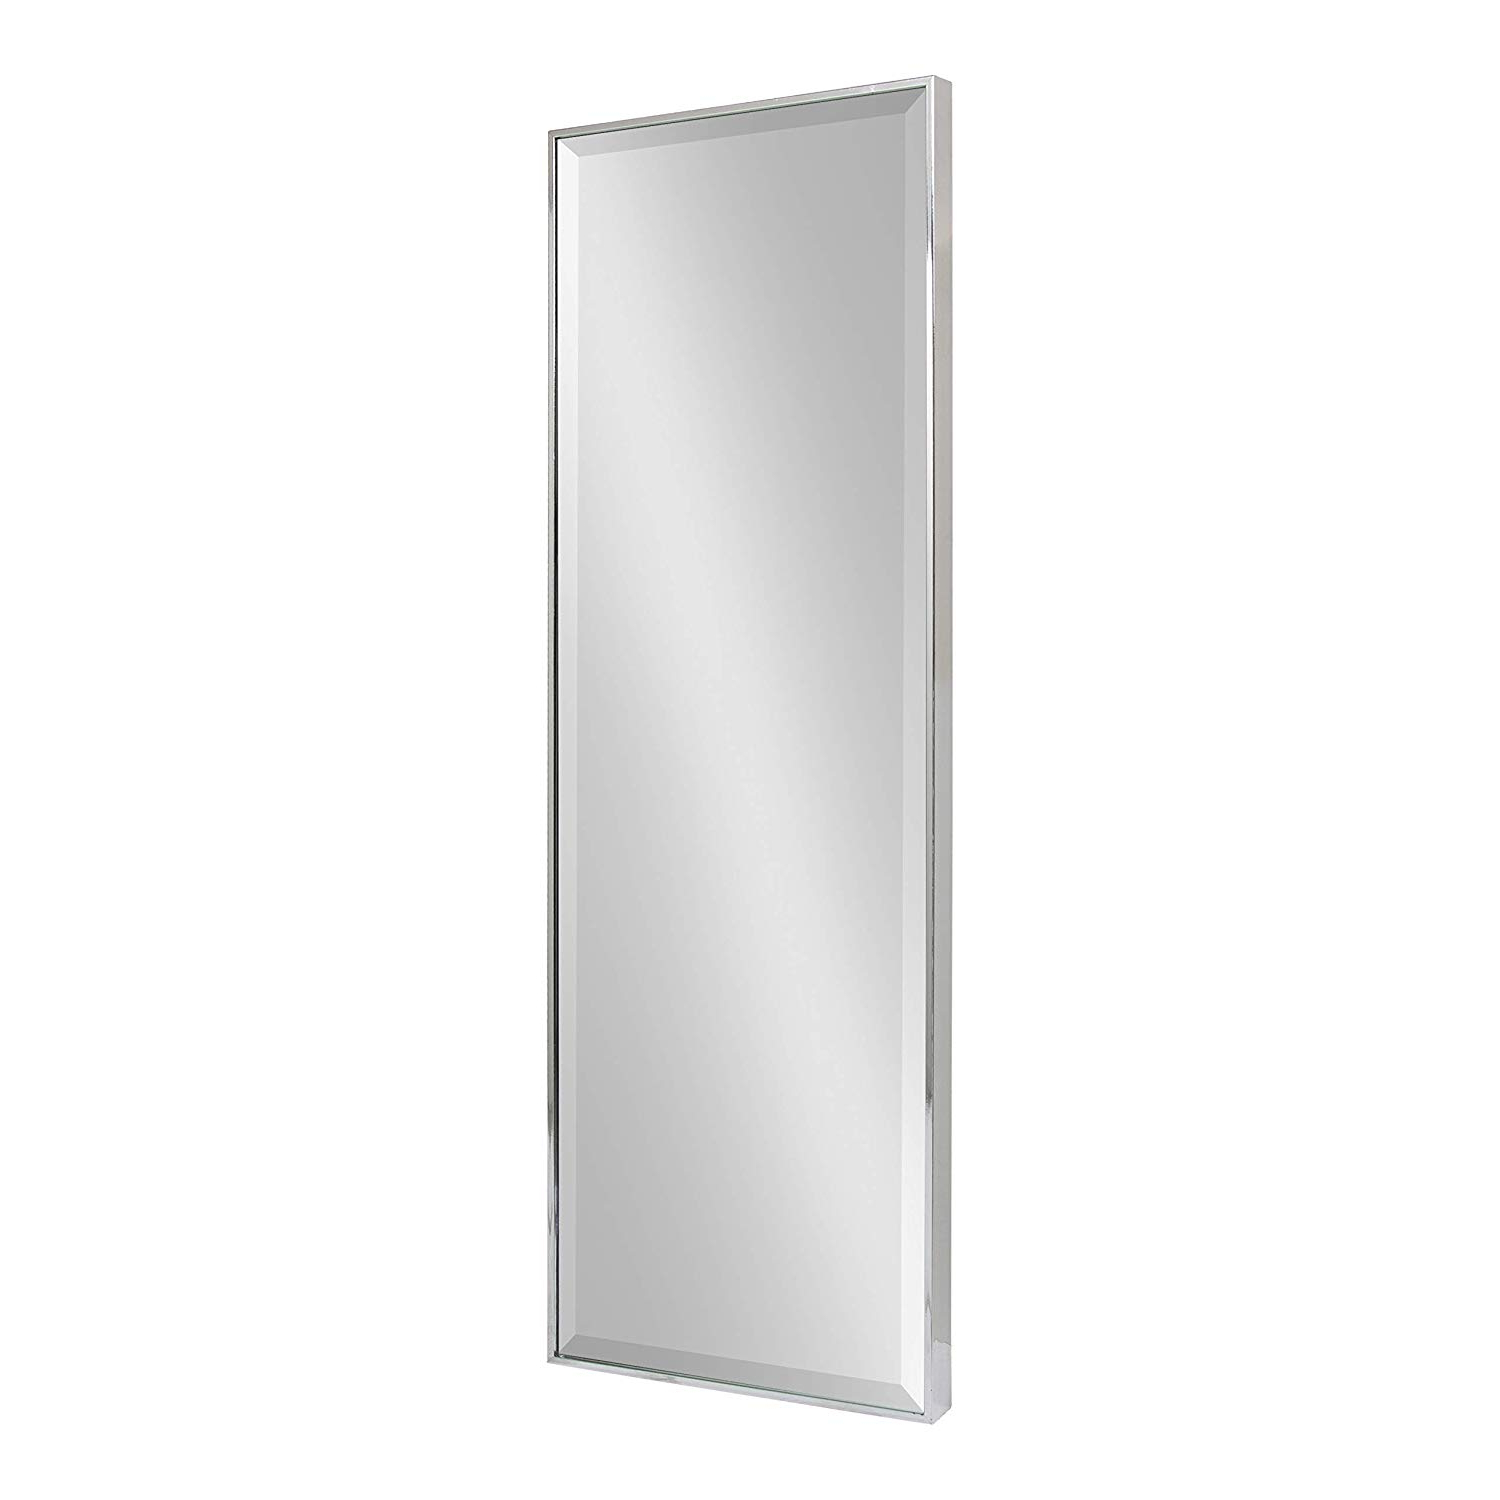 Cheap Full Length Wall Mirrors Regarding Most Current Amazon: Kate And Laurel Rhodes Decorative Frame Full Length Wall (View 16 of 20)